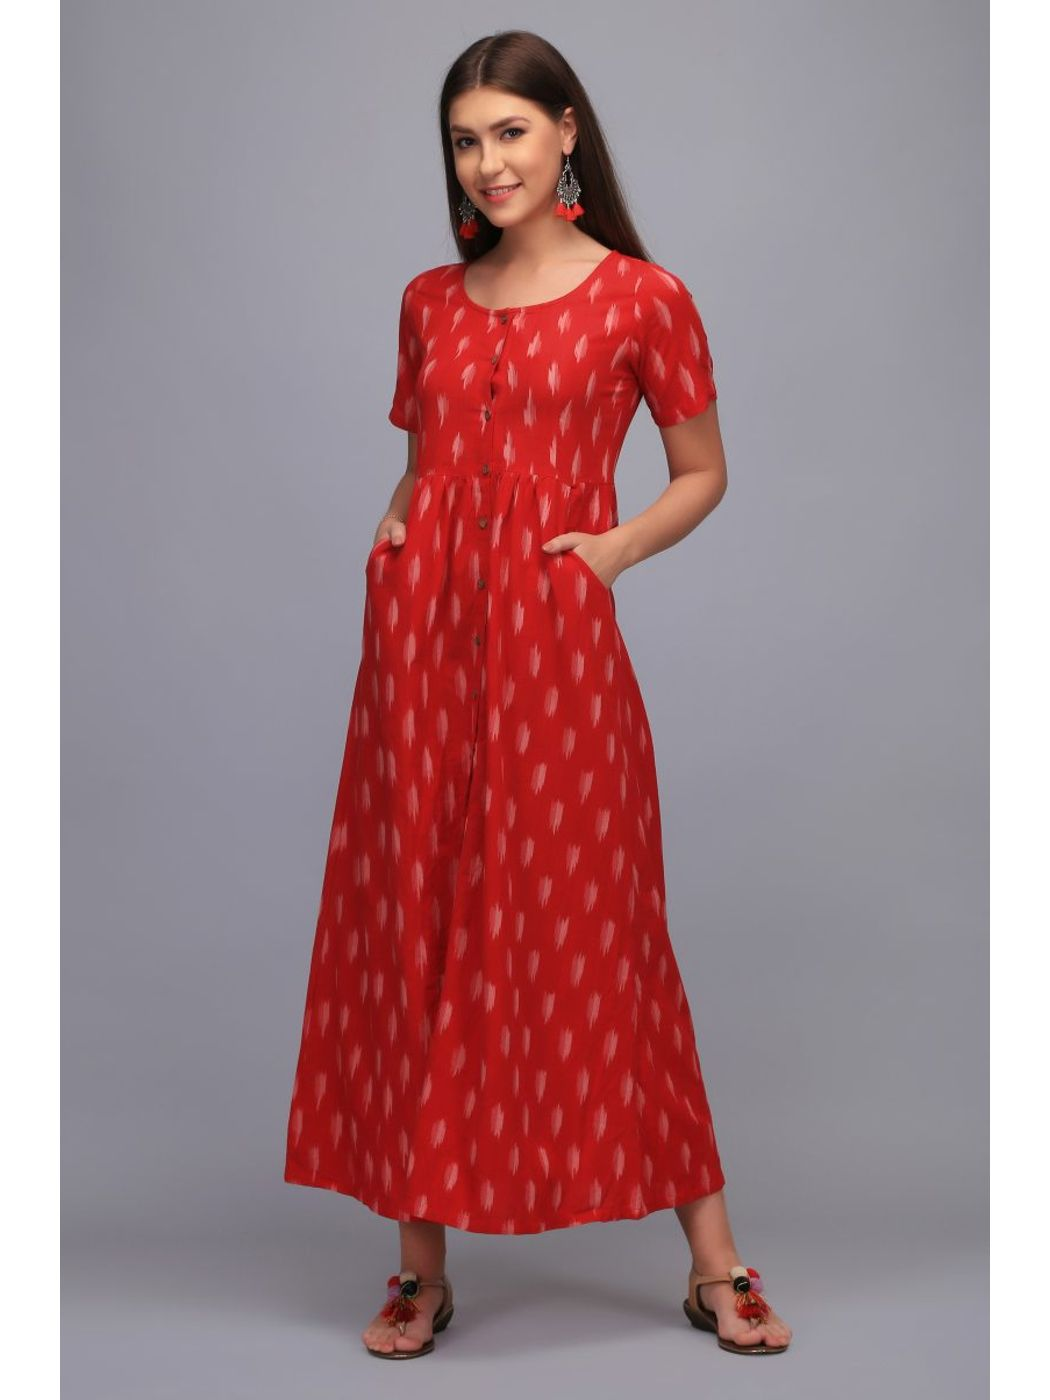 f6e9a6b8b6c Bohemian Dream Red Ikat Maxi Dress with pockets